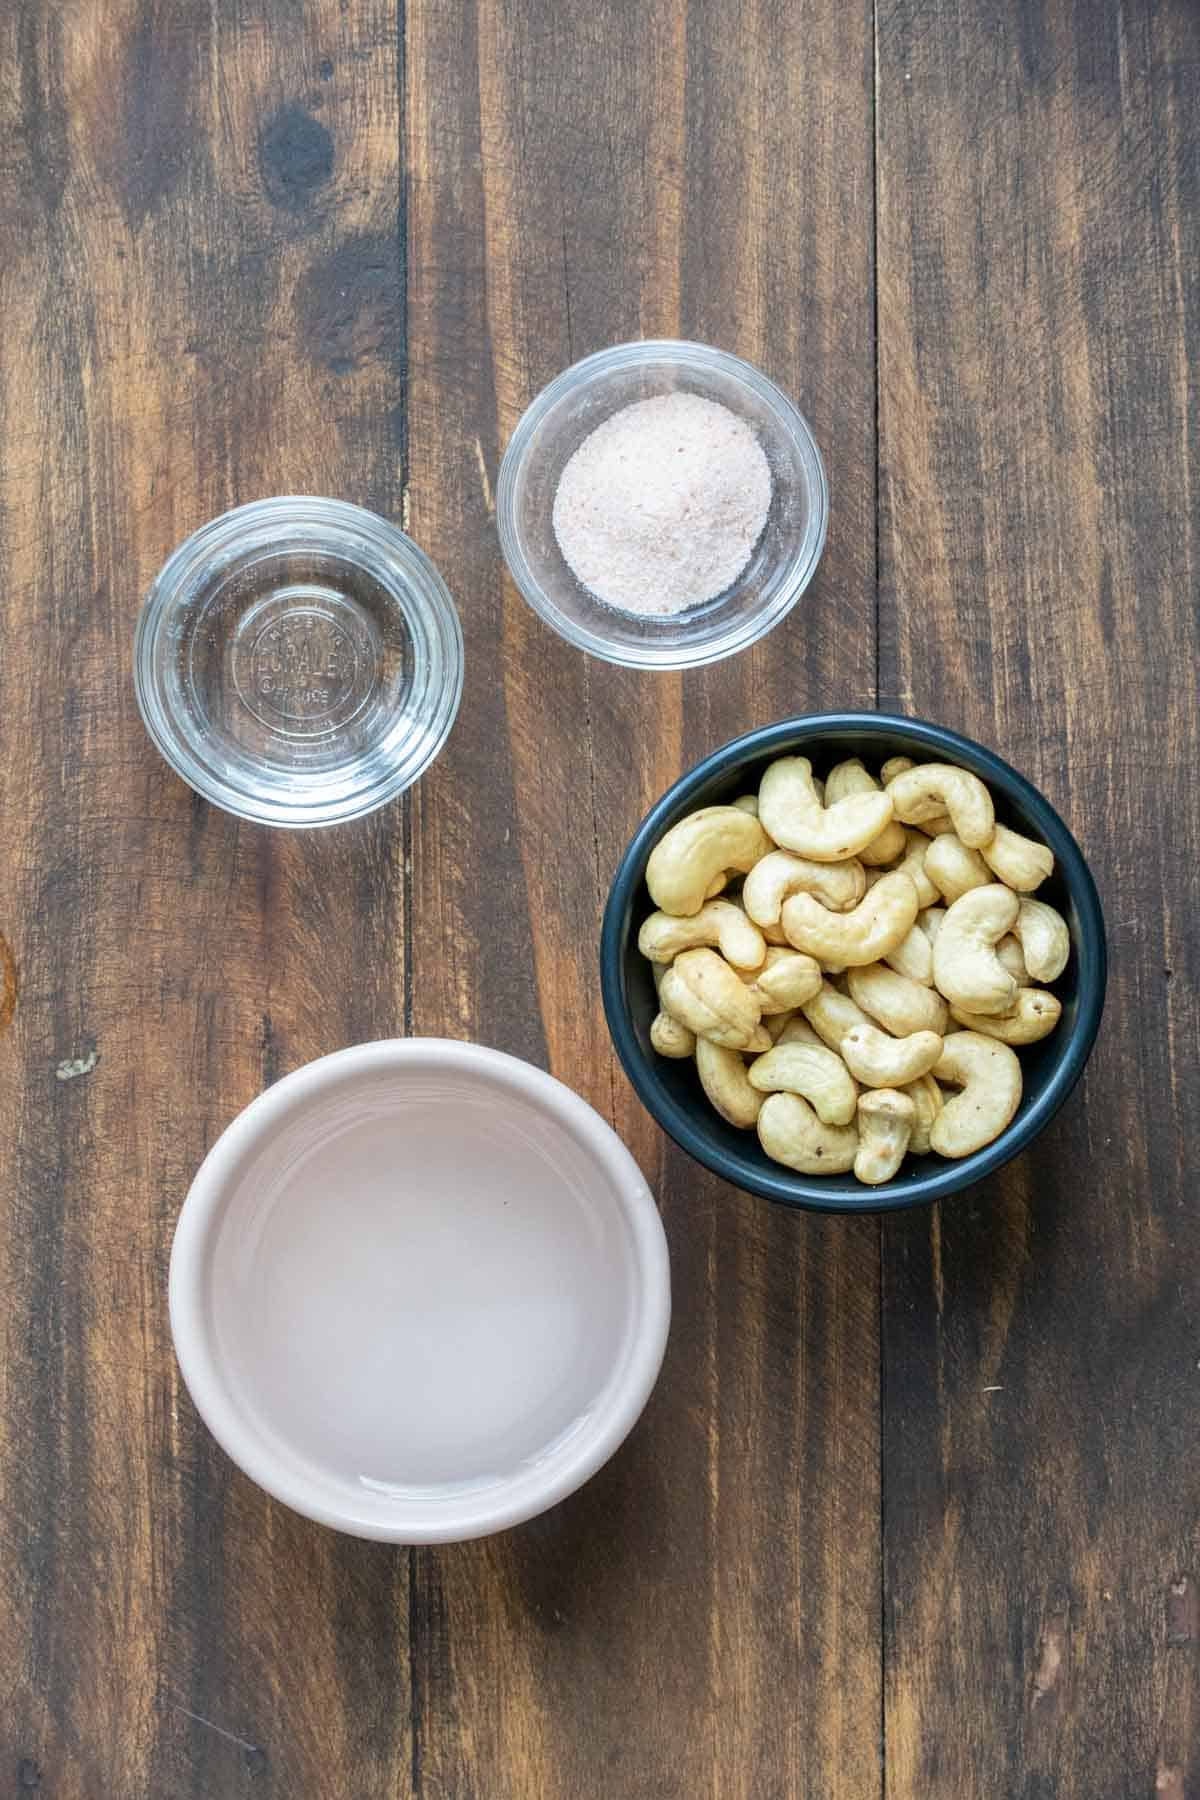 Bowls of cashews, water, salt and vinegar on a wooden surface